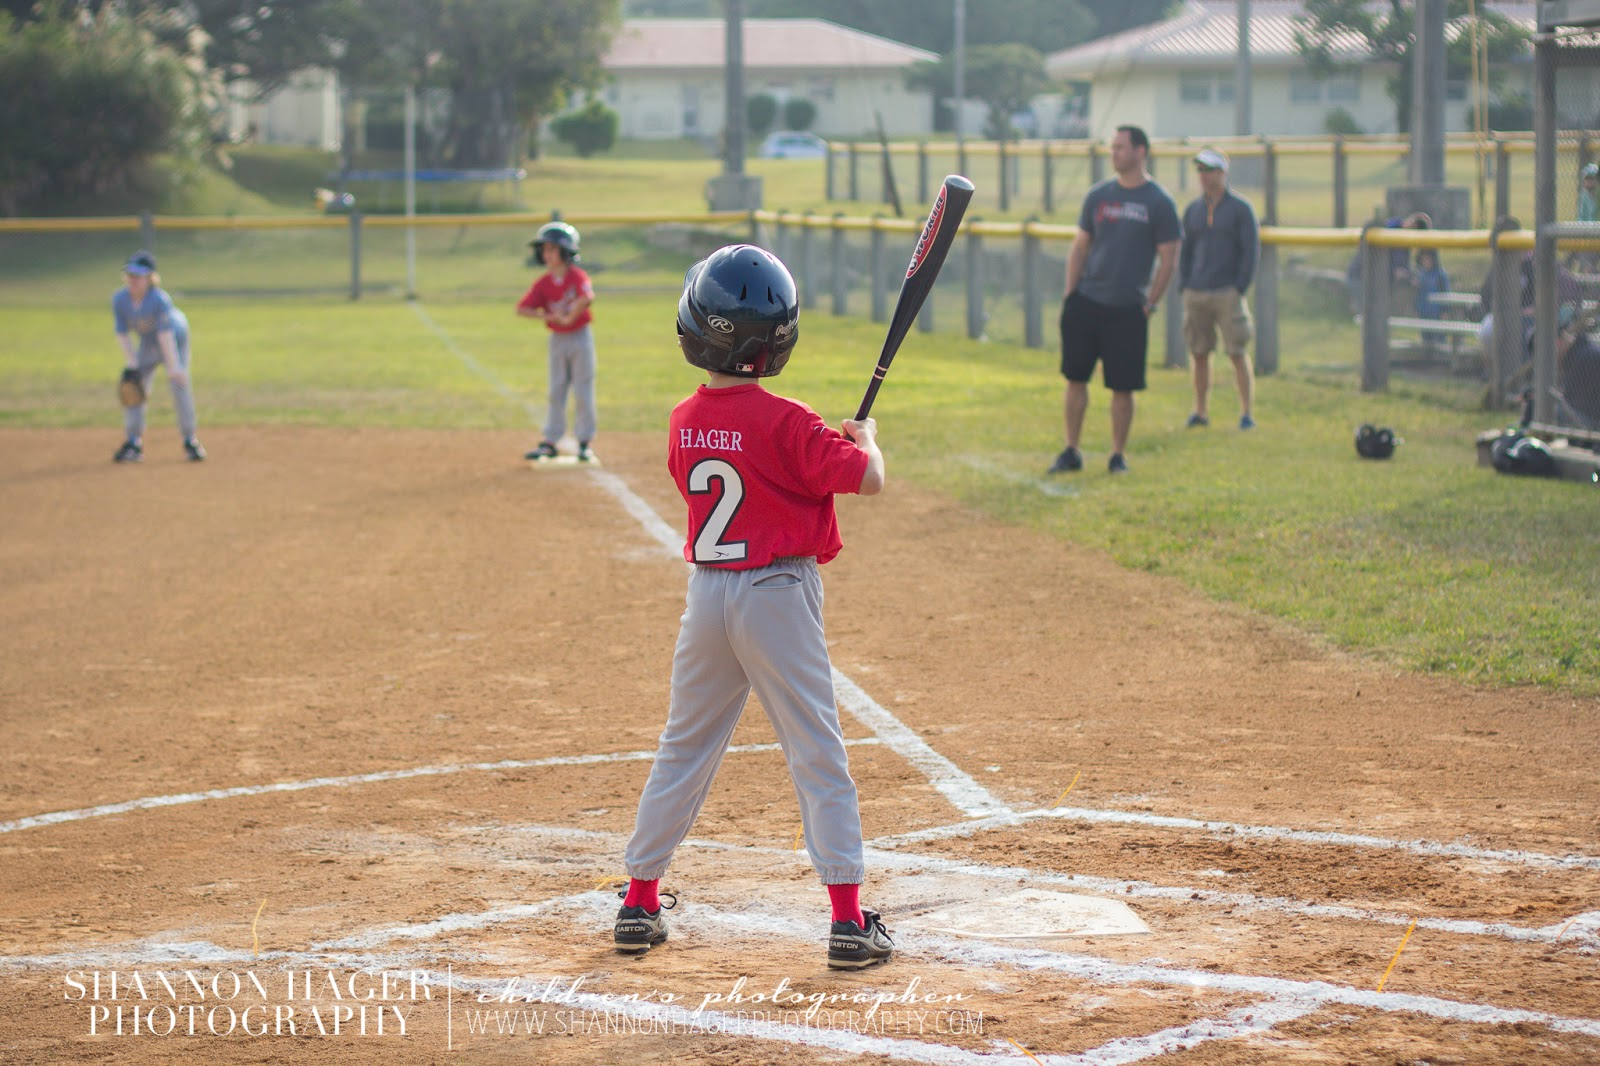 Children's Photography by Shannon Hager Photography, baseball